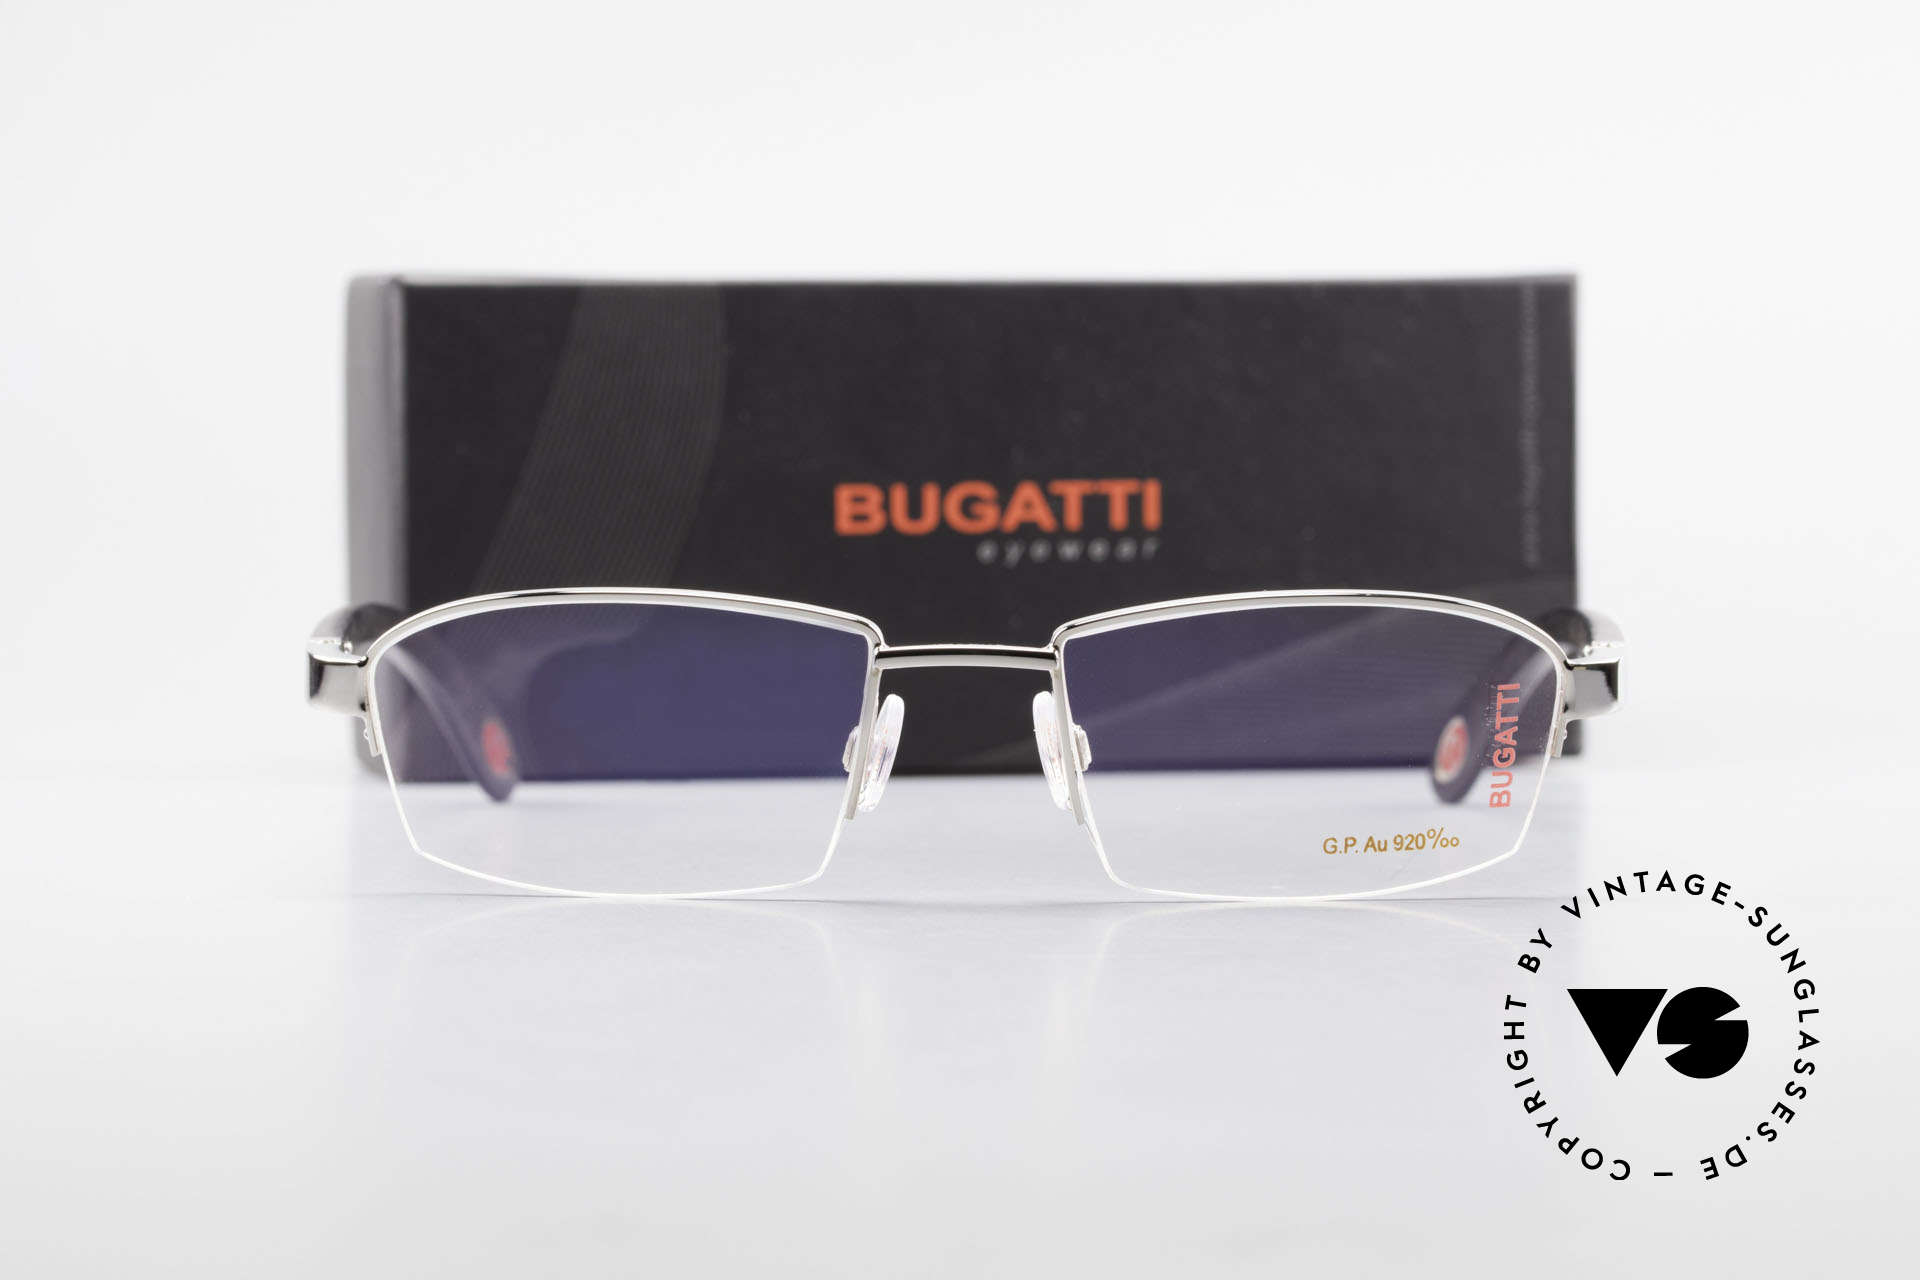 Bugatti 473 Precious Ebony White Gold, Size: large, Made for Men